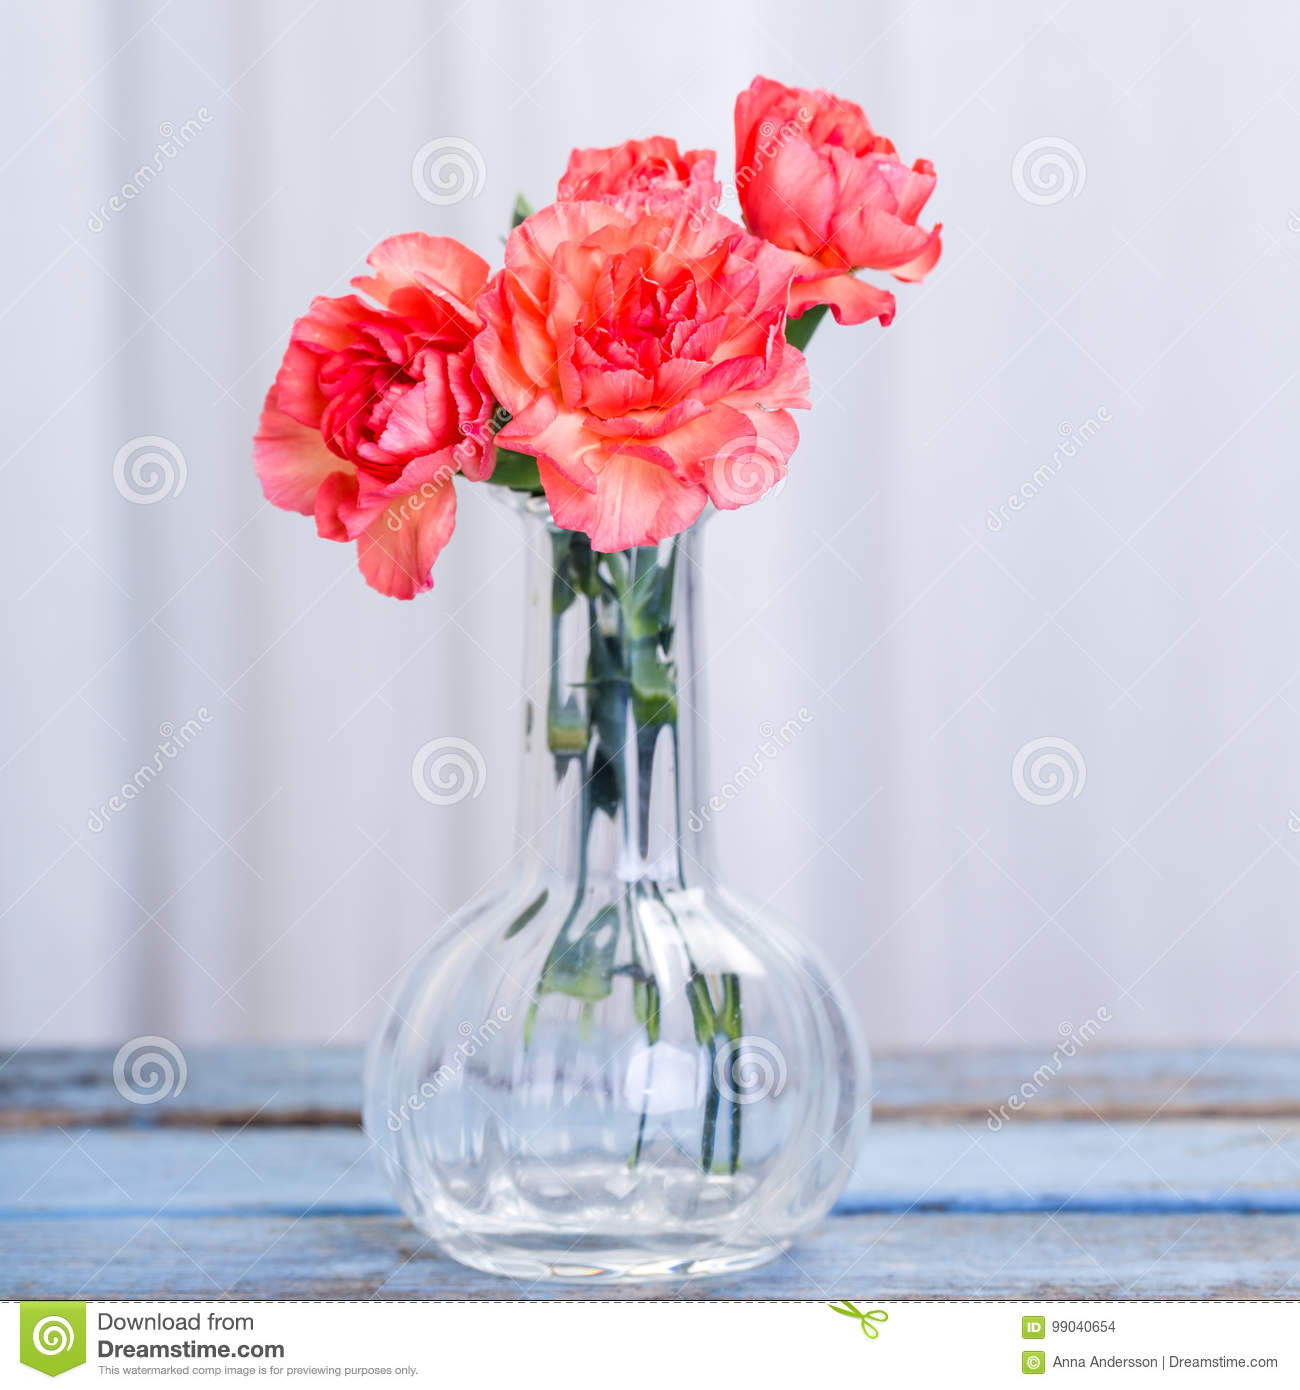 Bouquet of Carnations in glass vase